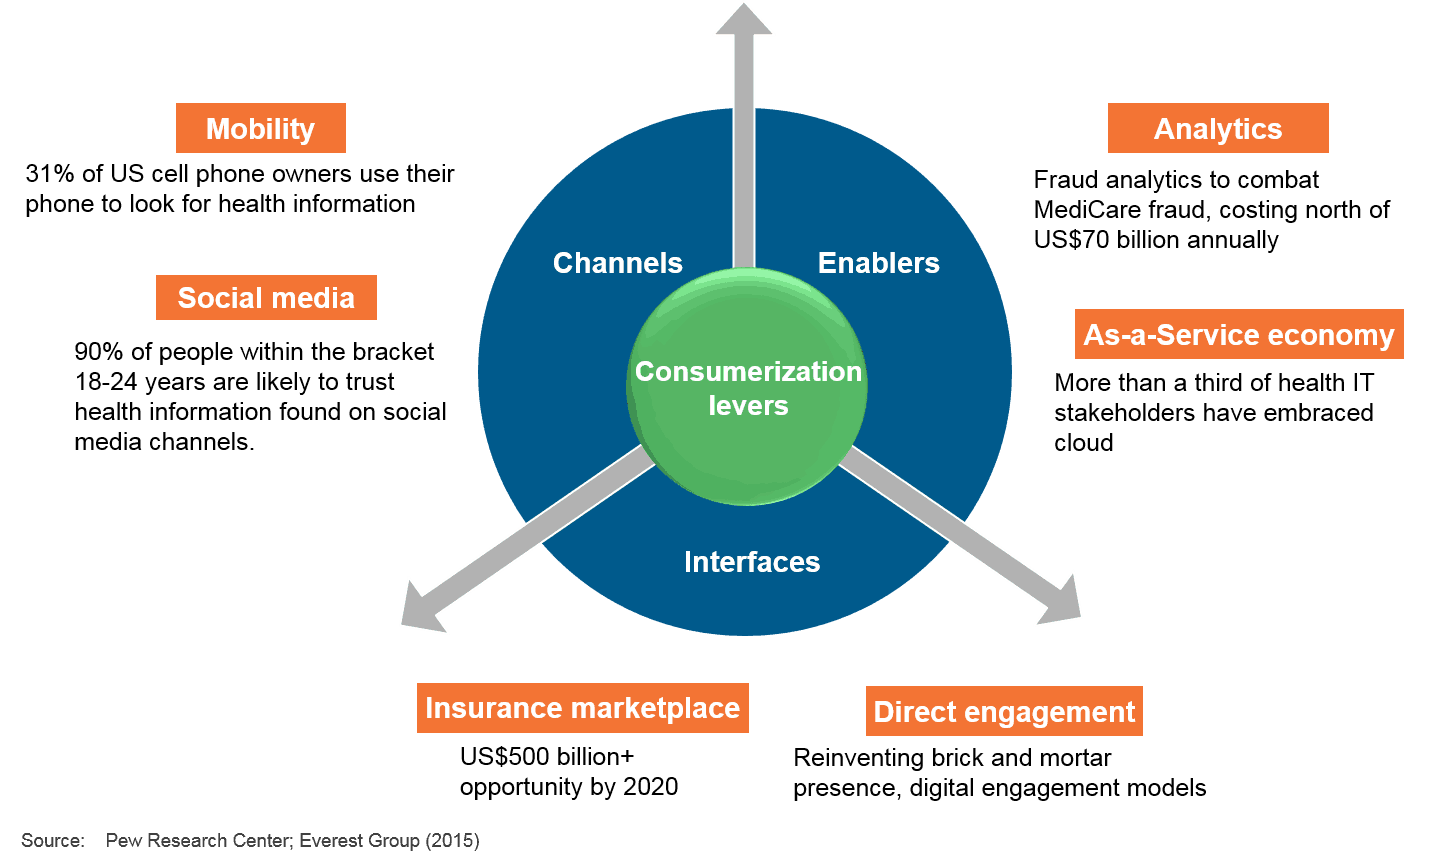 Healthcare consumerization levers